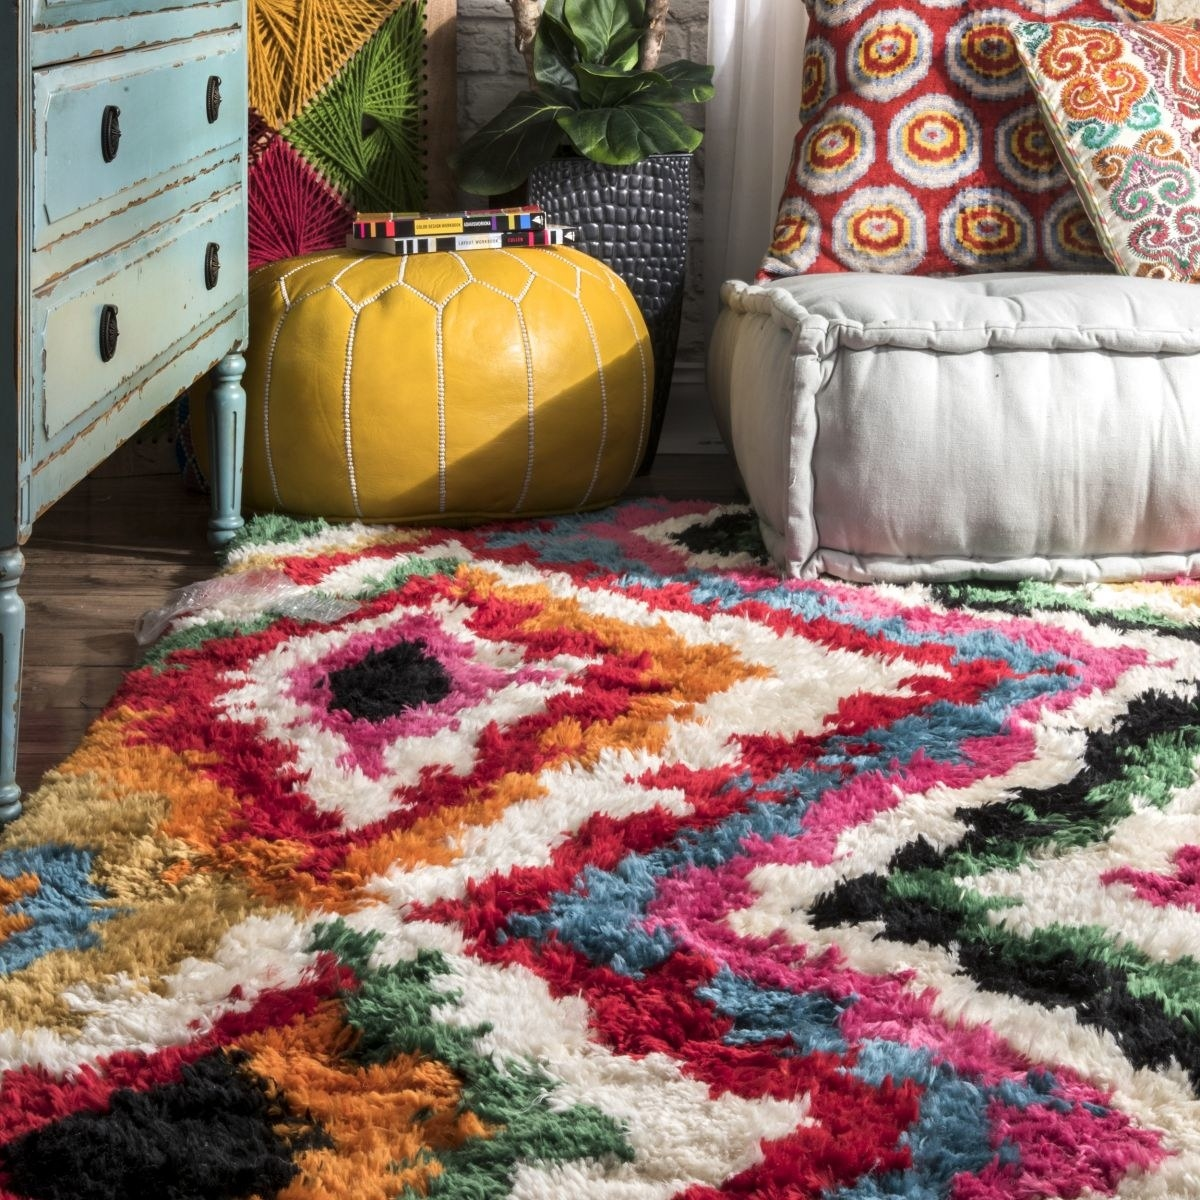 A thick shag rug with multiple bright colors in diamond patterns